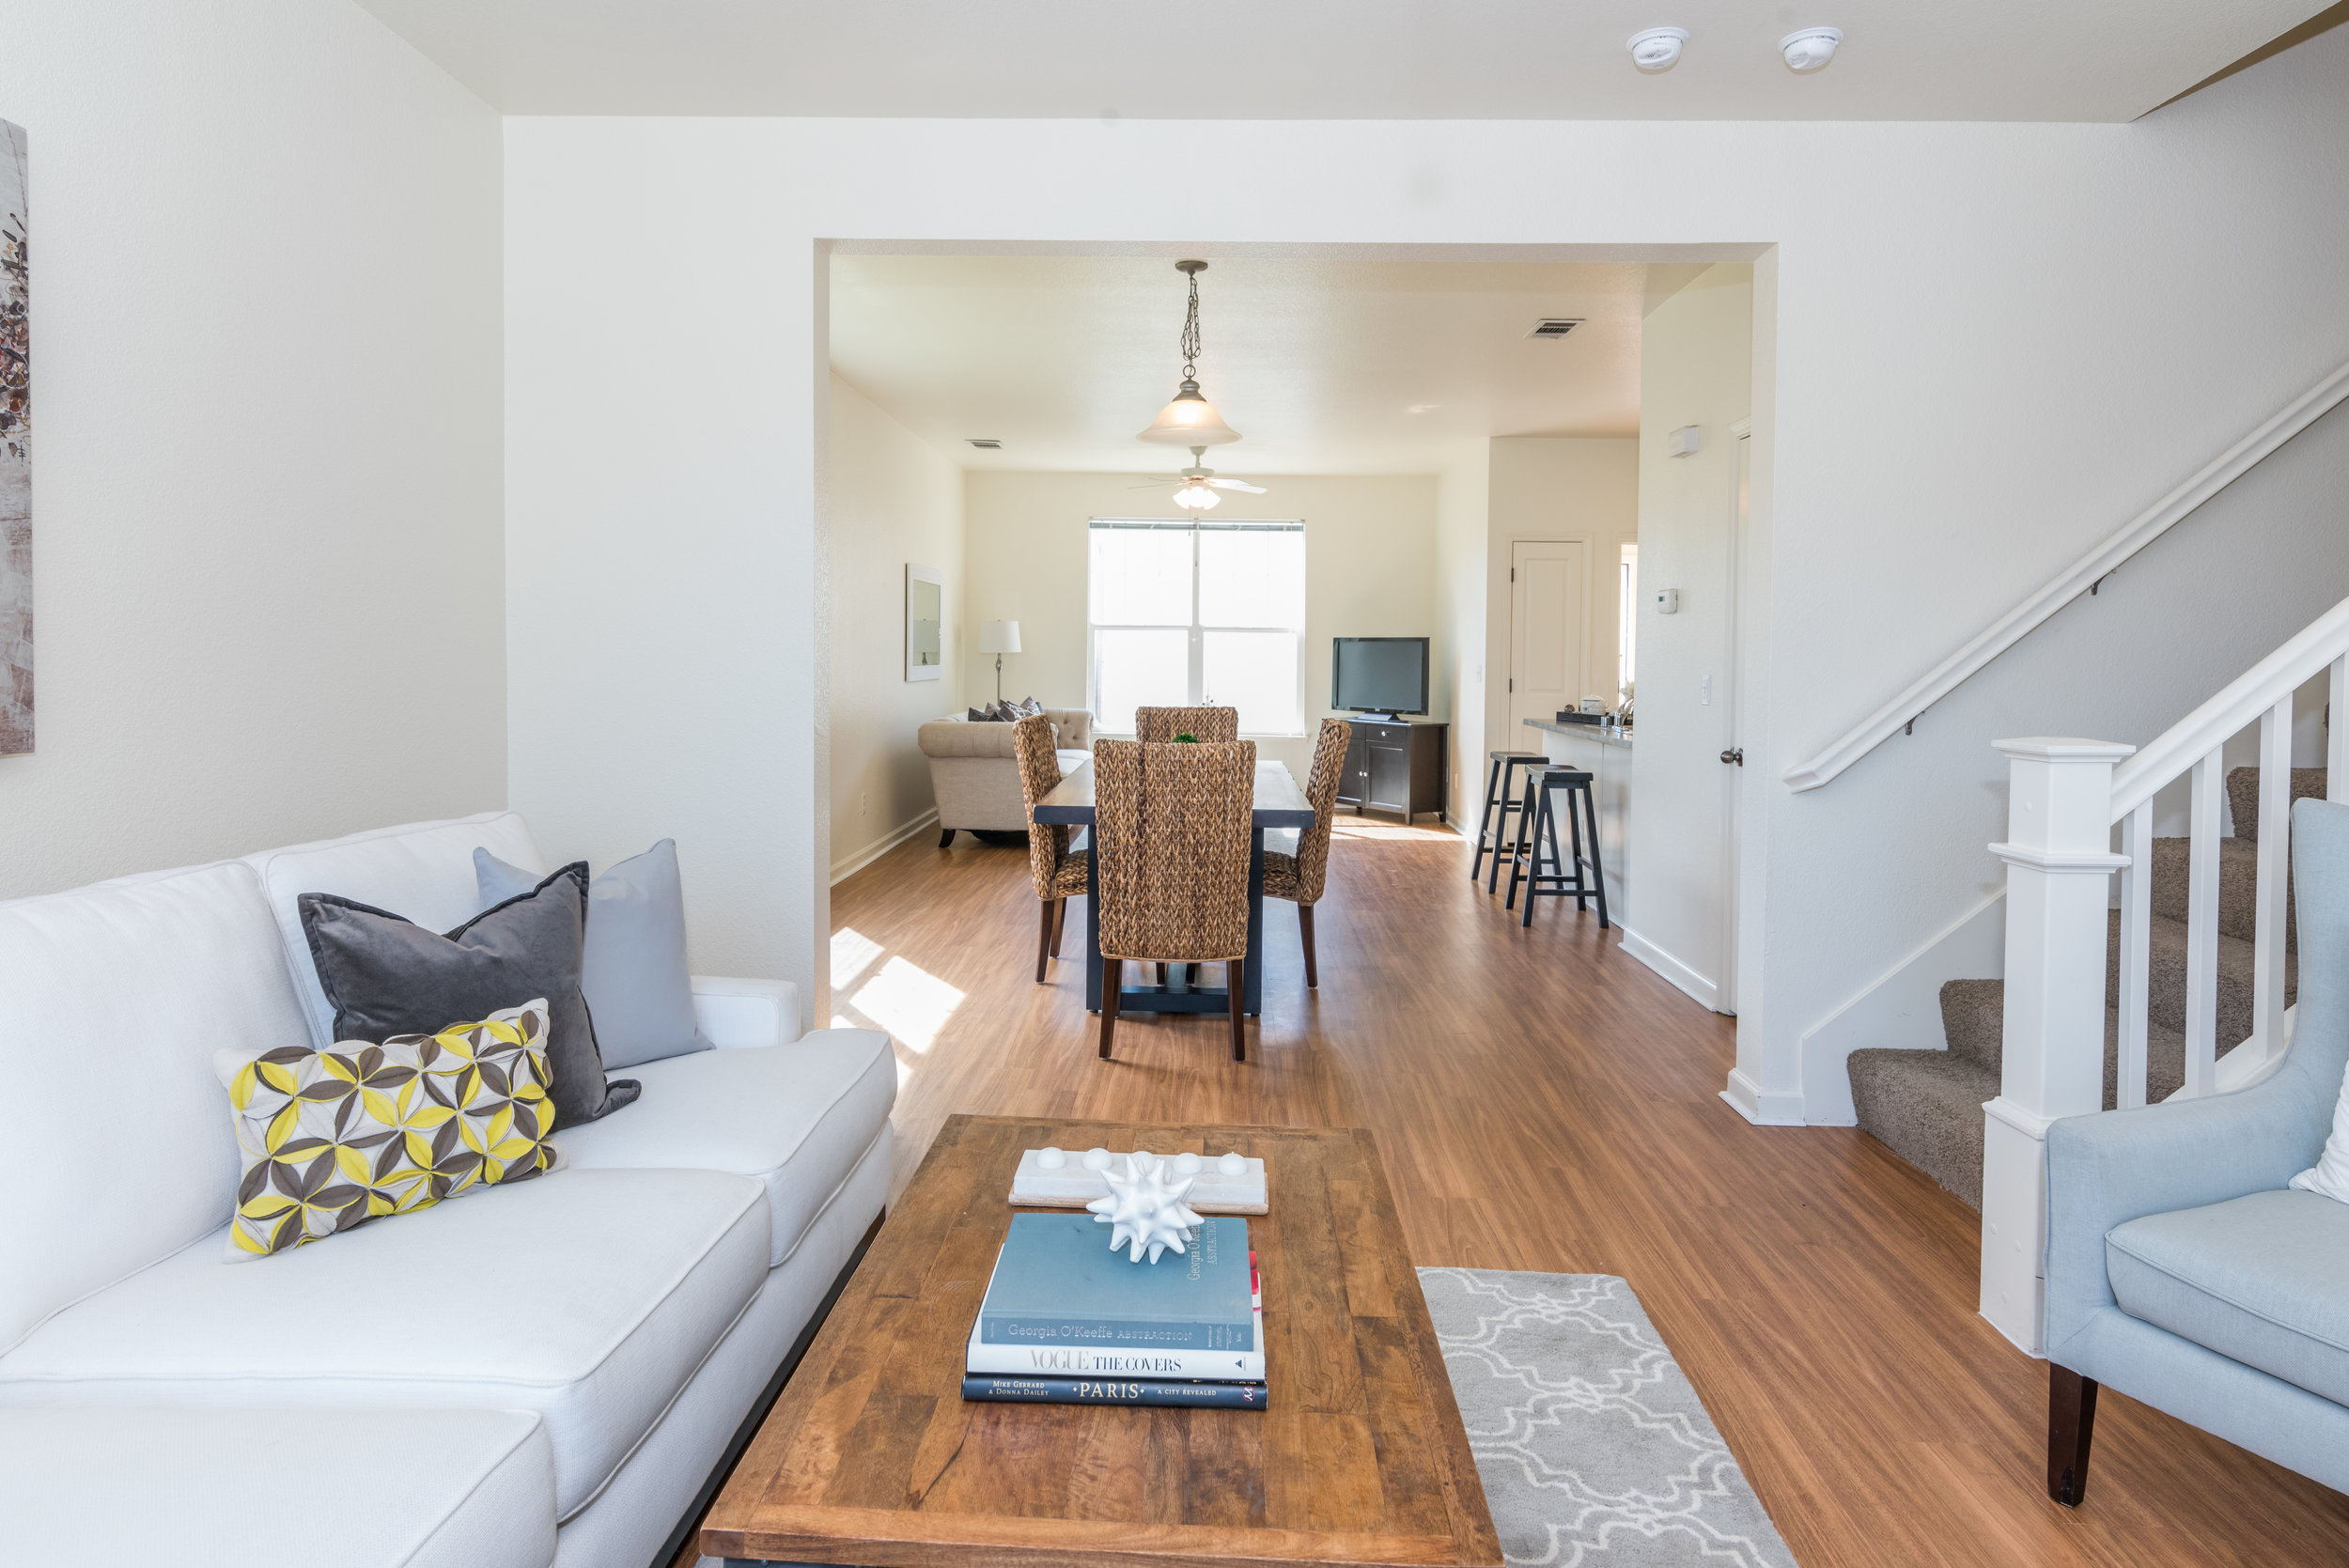 Living and Dining Room in Rental Home